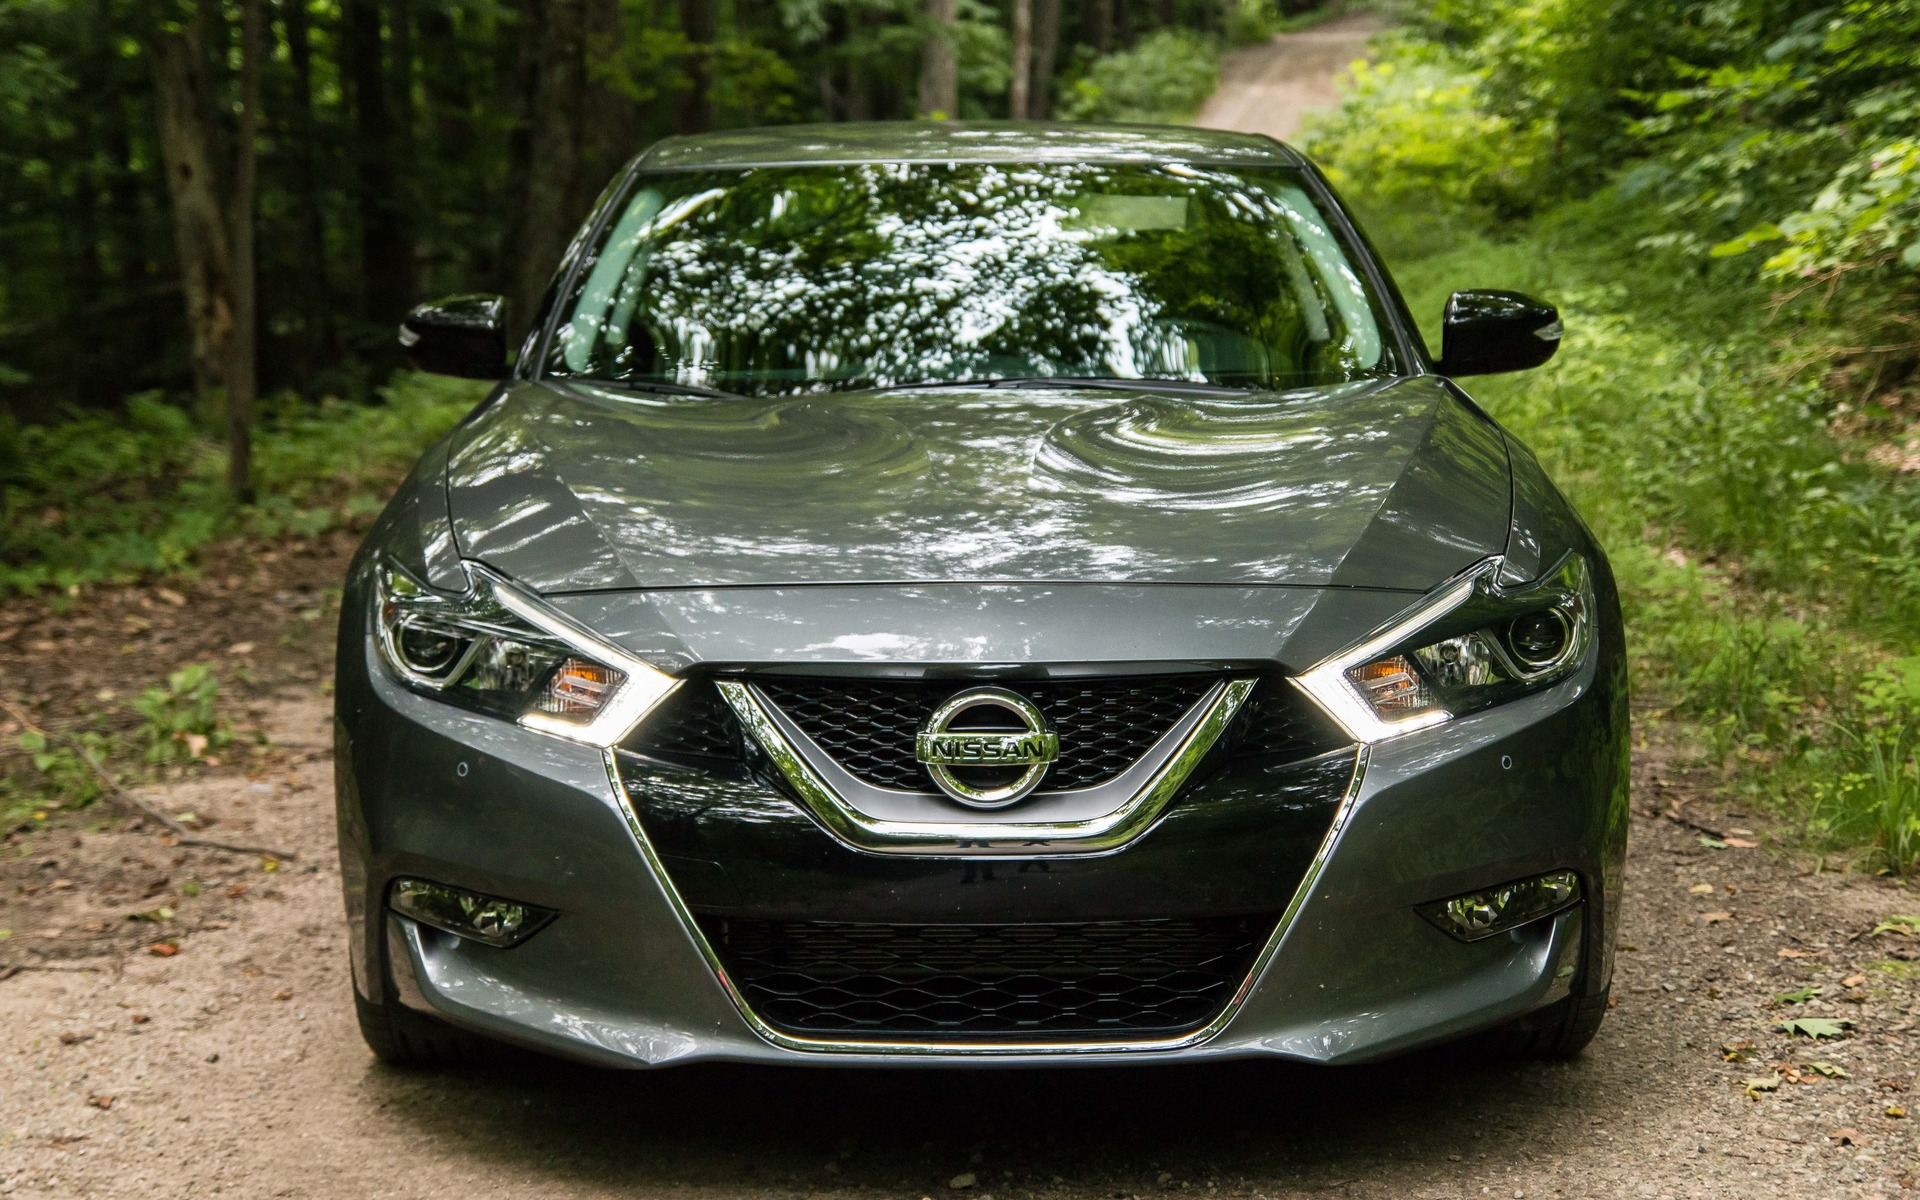 2016 Nissan Maxima - The front fascia is really agressive